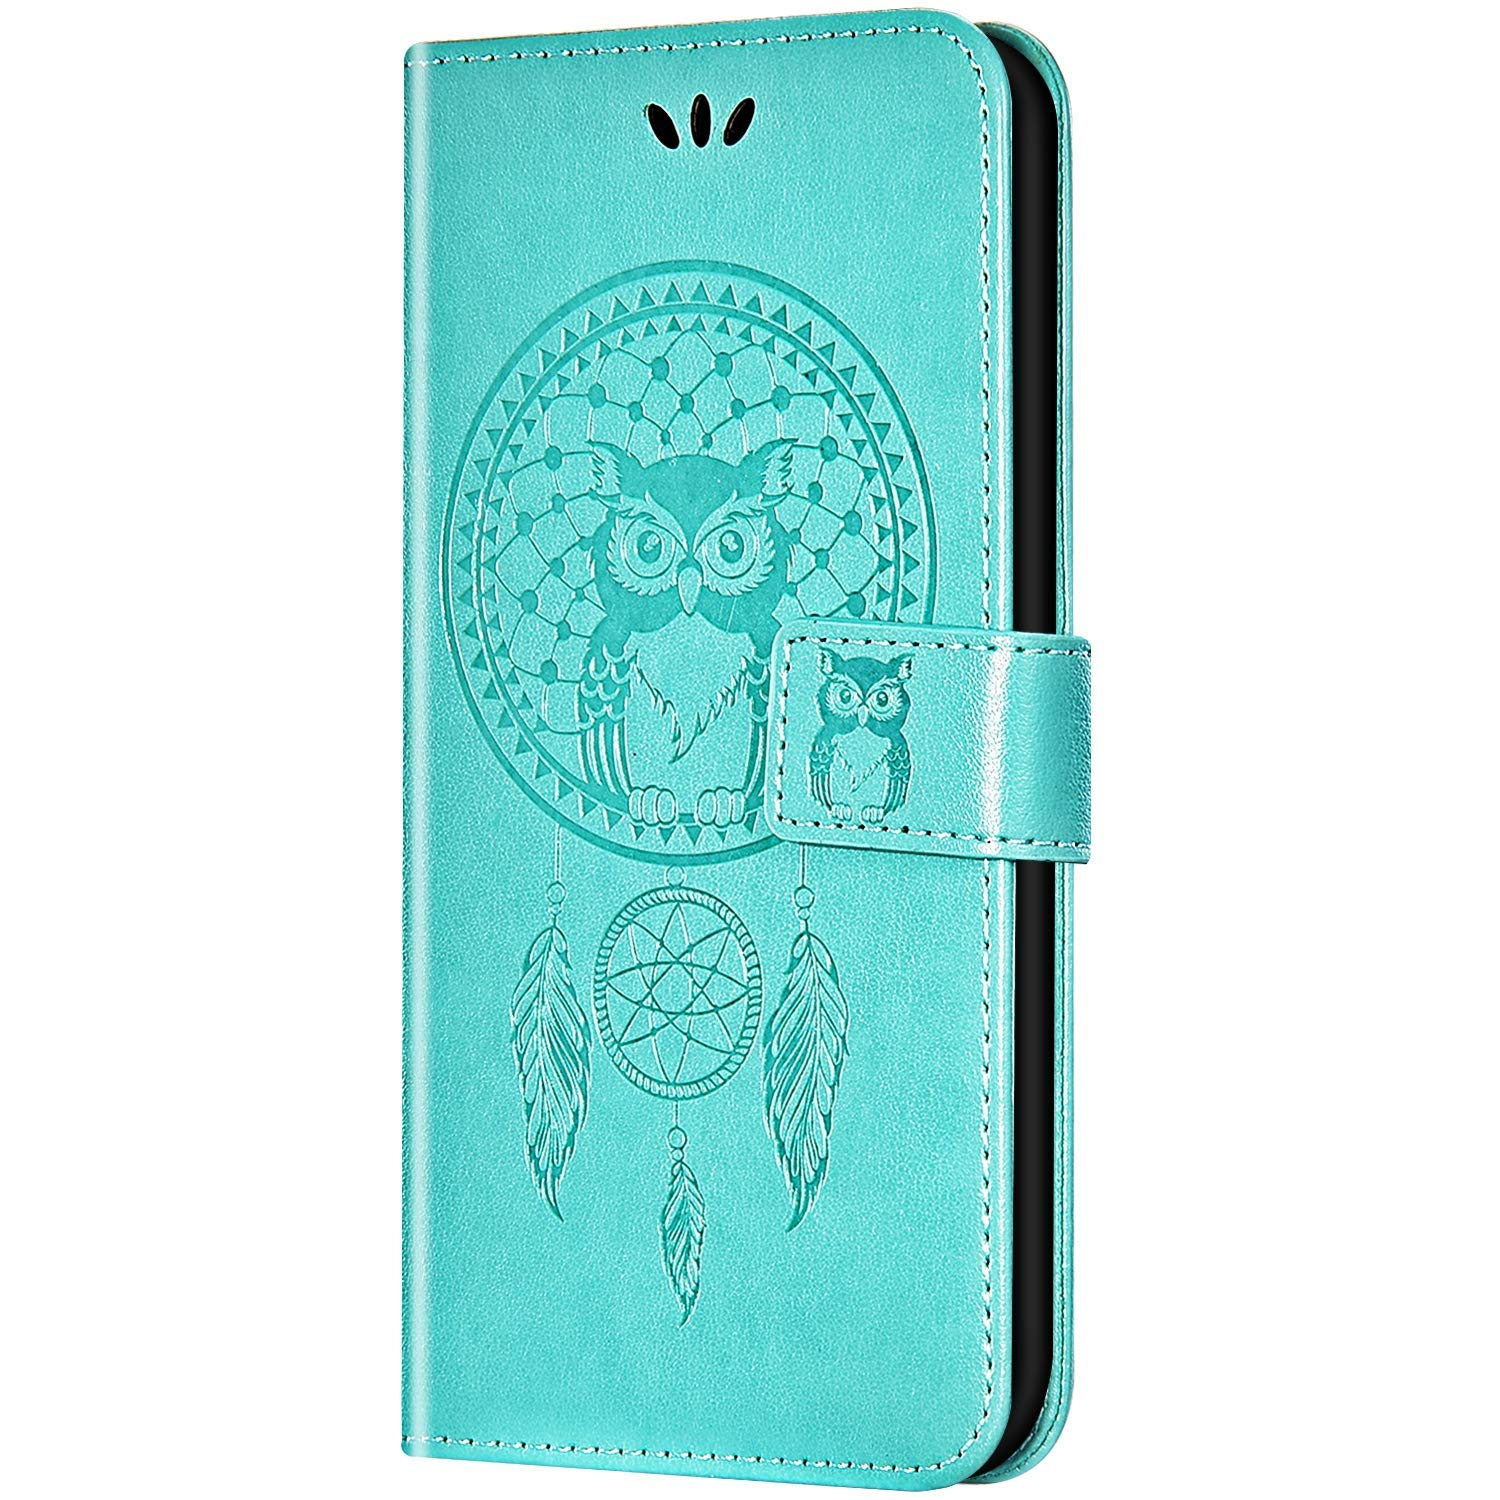 Case for Galaxy A10e Flip Case Ultra Slim PU Leather Wallet with Card Holder/Slot and Magnetic Closure Shockproof Cartoon Animal Owl Embossed Protective Cover for Galaxy A10e,Green by ikasus